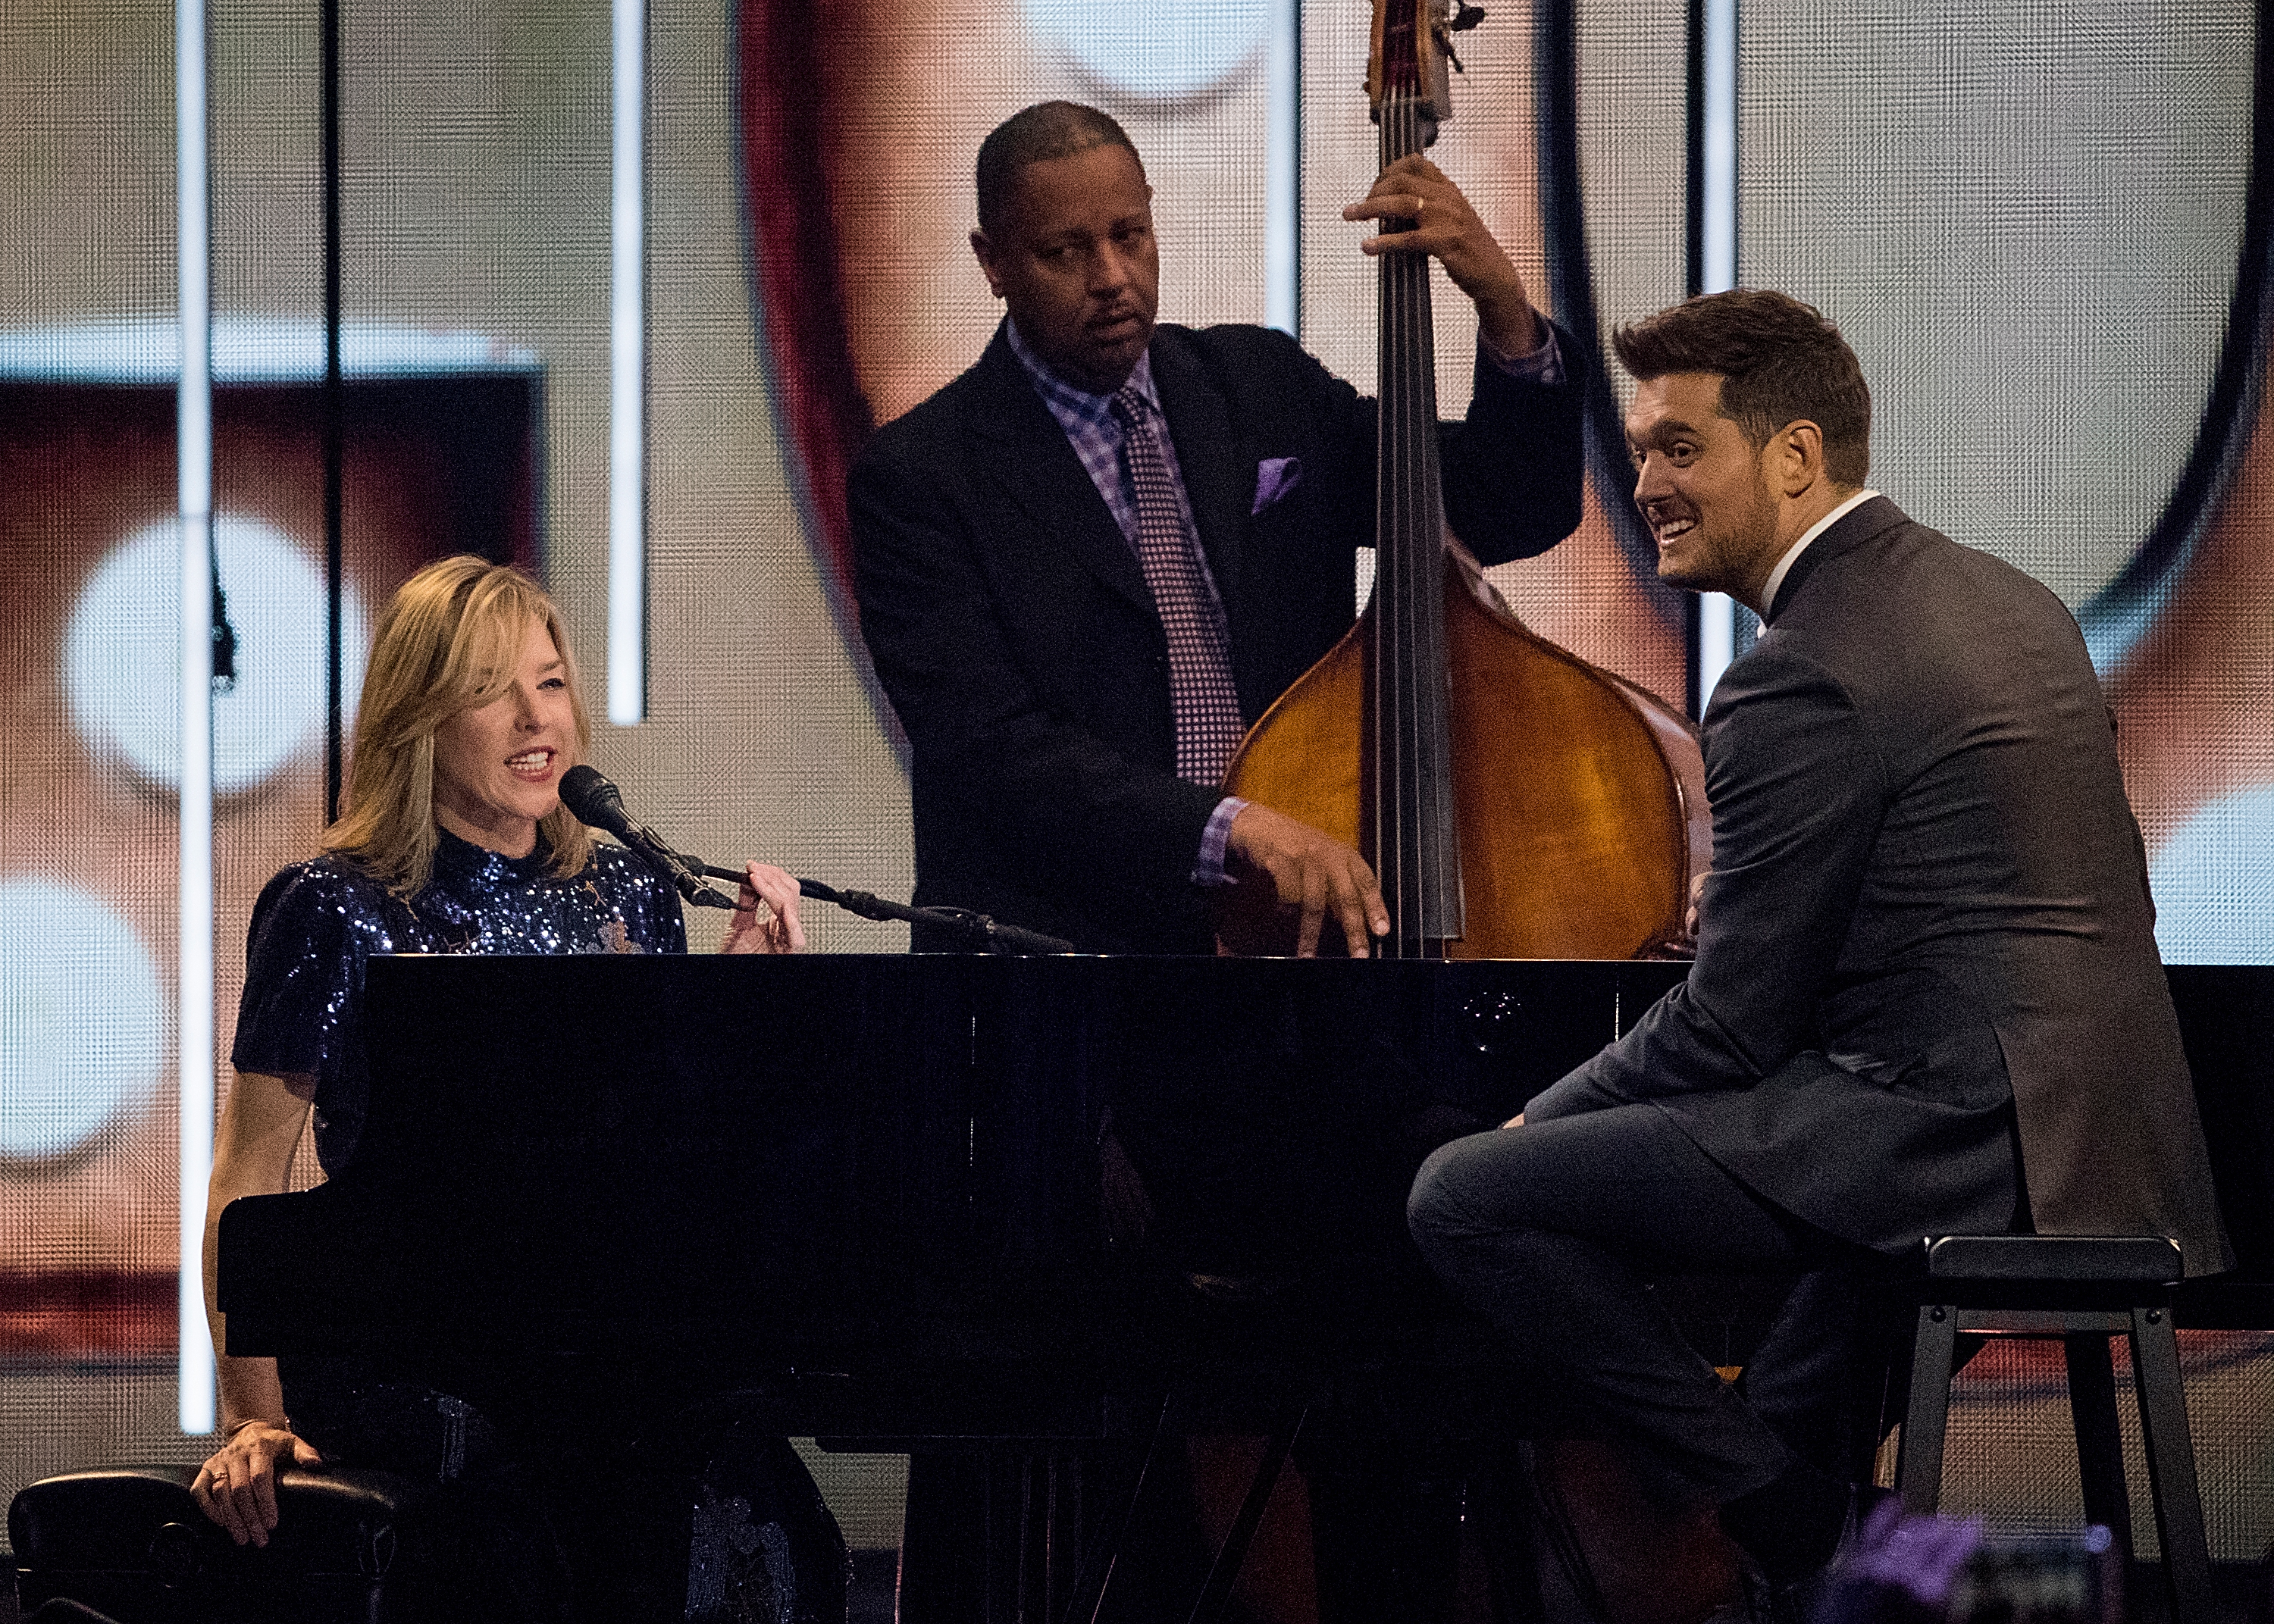 (L-R) Canadian jazz pianist Diana Krall and Singer Michael Buble perform onstage during the 2018 JUNO Awards at Rogers Arena on March 25, 2018, in Vancouver, Canada. (Getty)